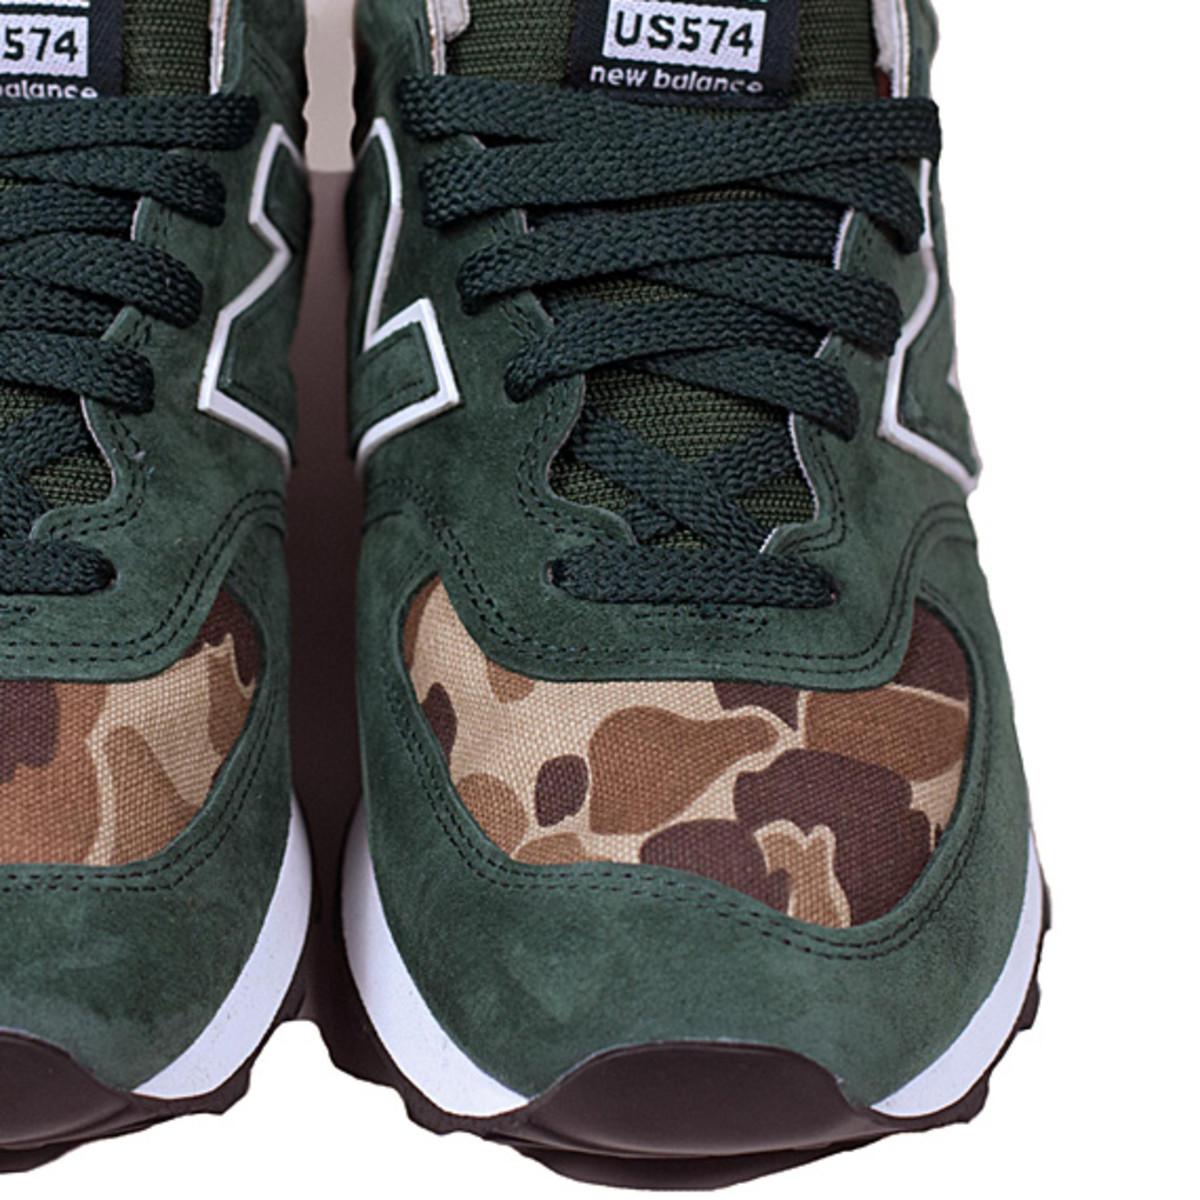 ball-and-buck-new-balance-us574-mountain-green-07